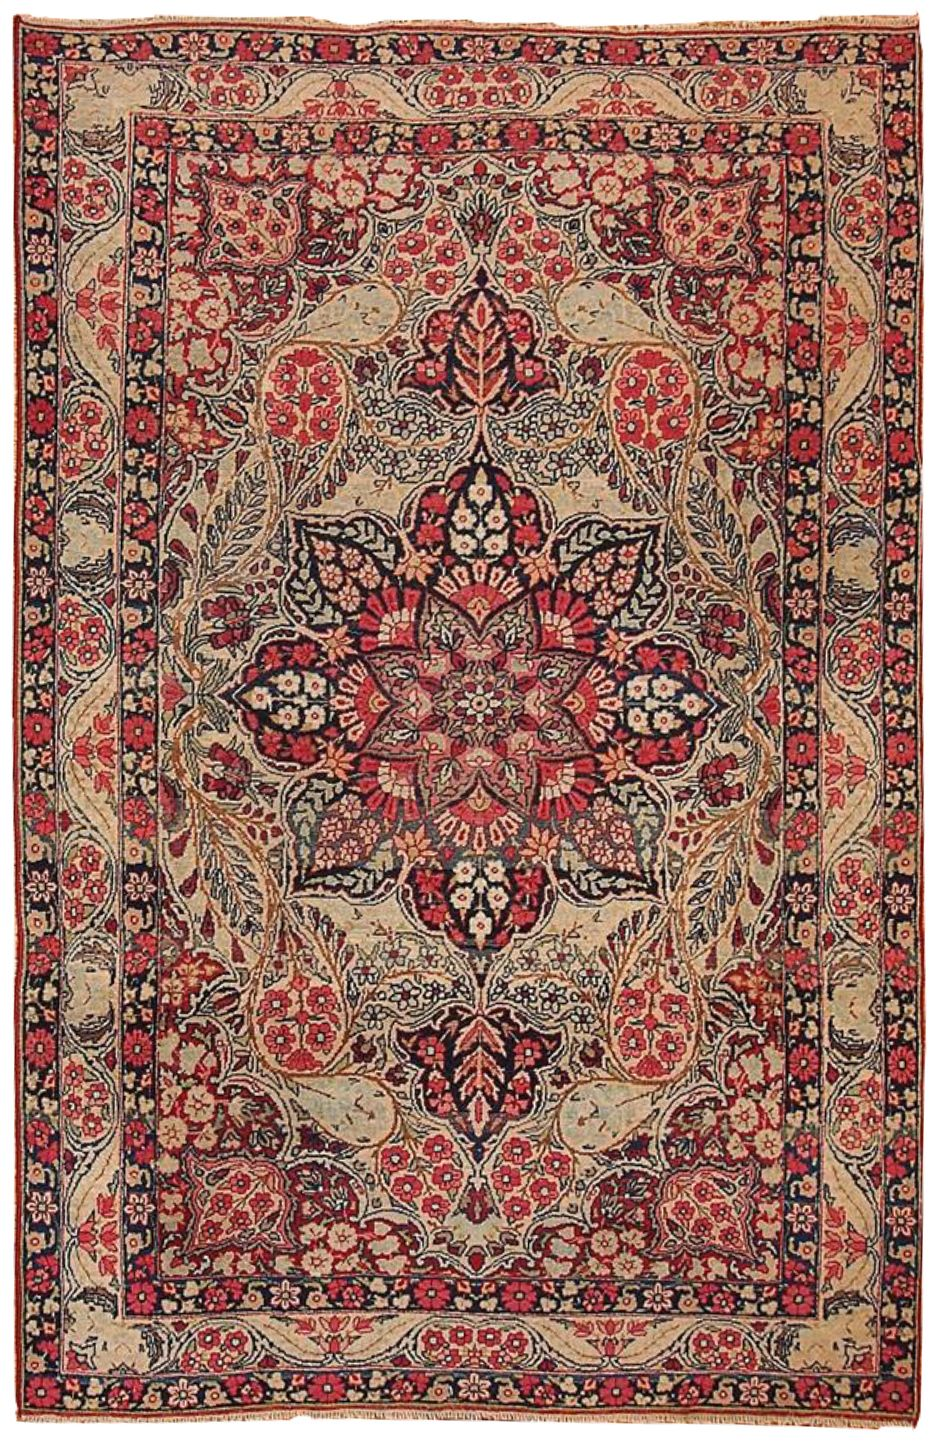 Antique Persian Kerman Lavar Rug